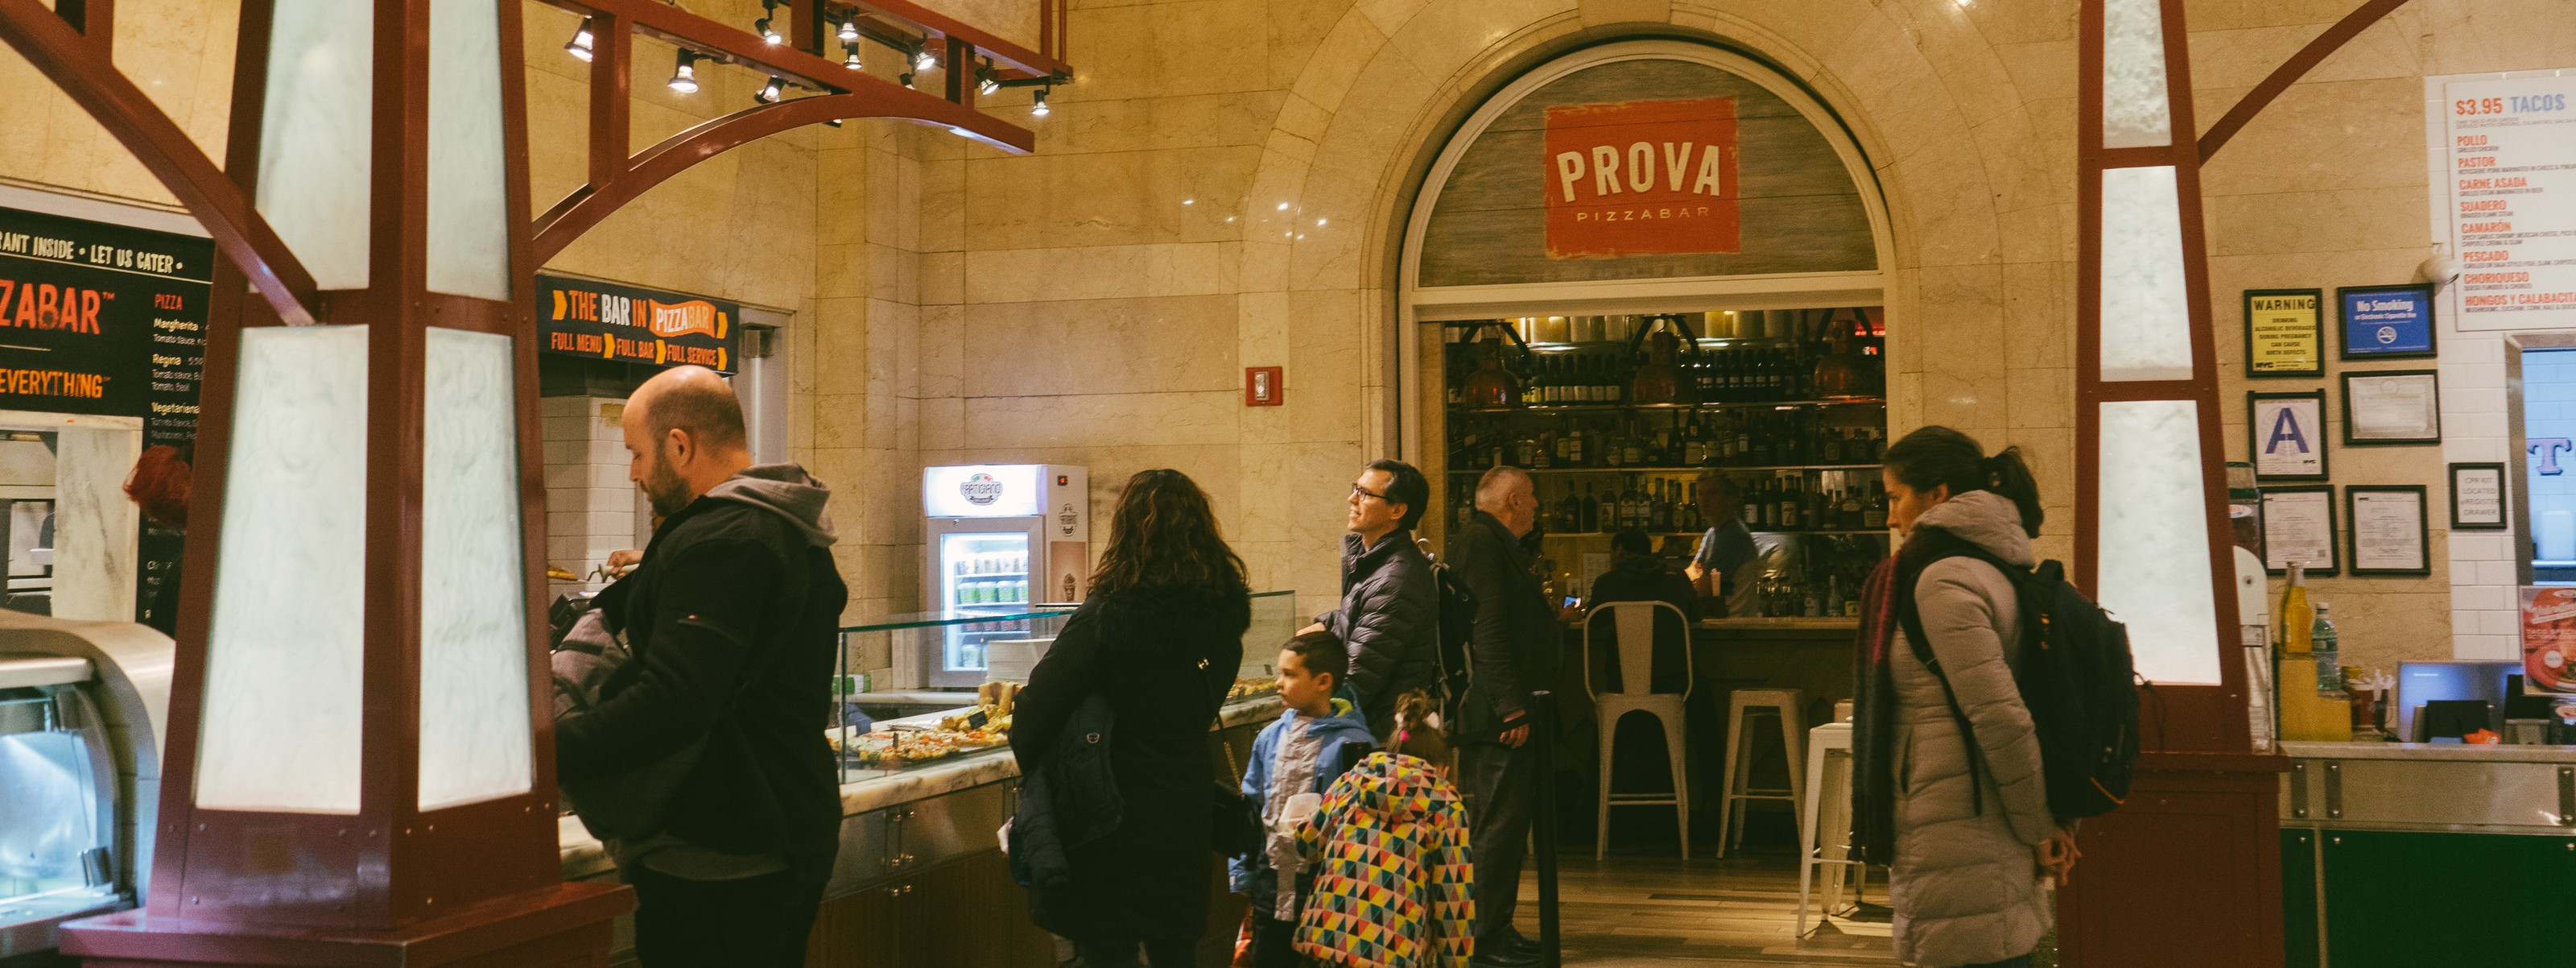 Cucina New York Grand Central Prova Pizzabar Midtown East New York The Infatuation